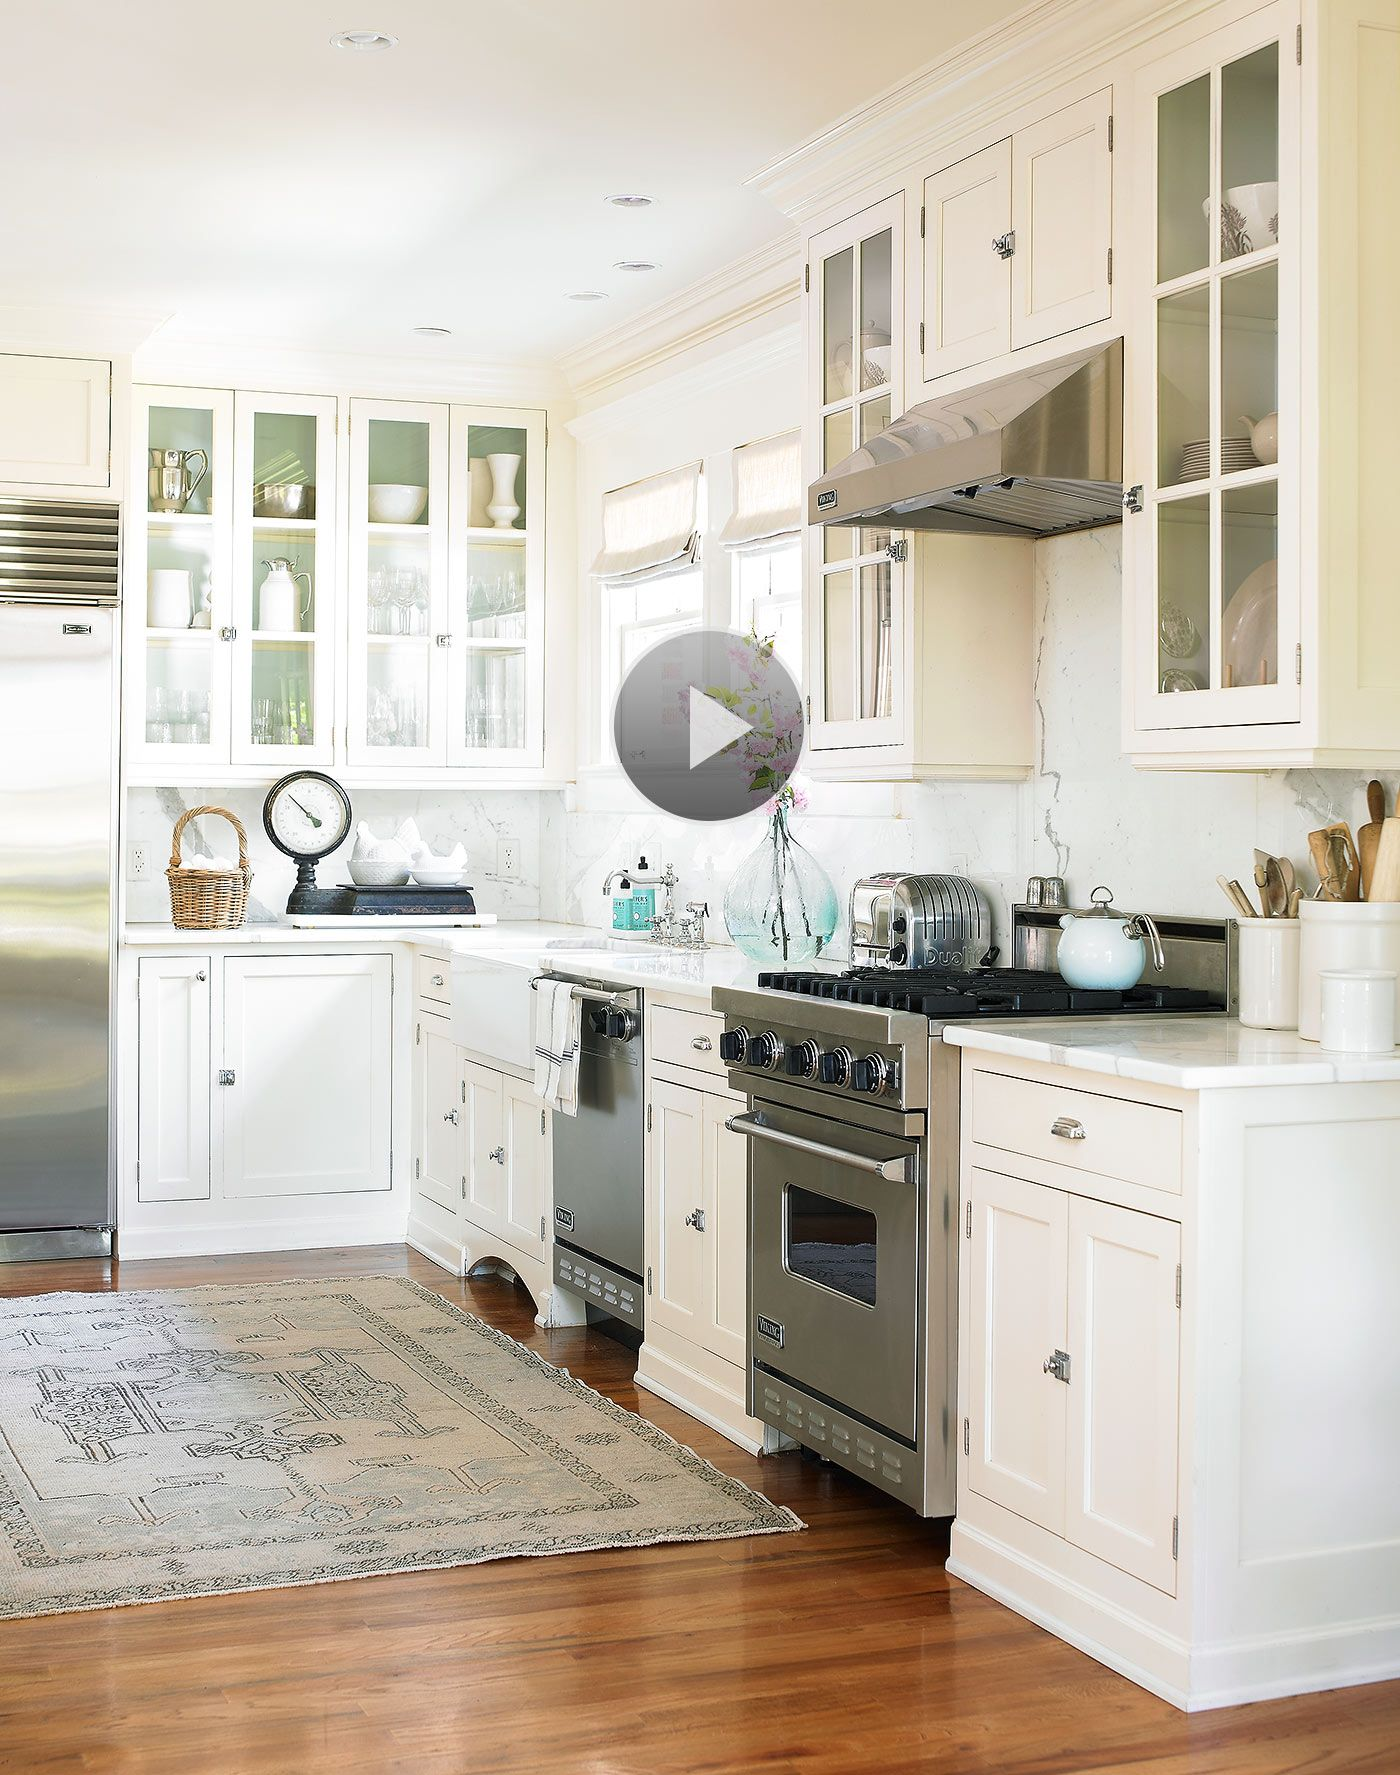 White Paint Colors for Kitchen Cabinets | White paint colors, White ...